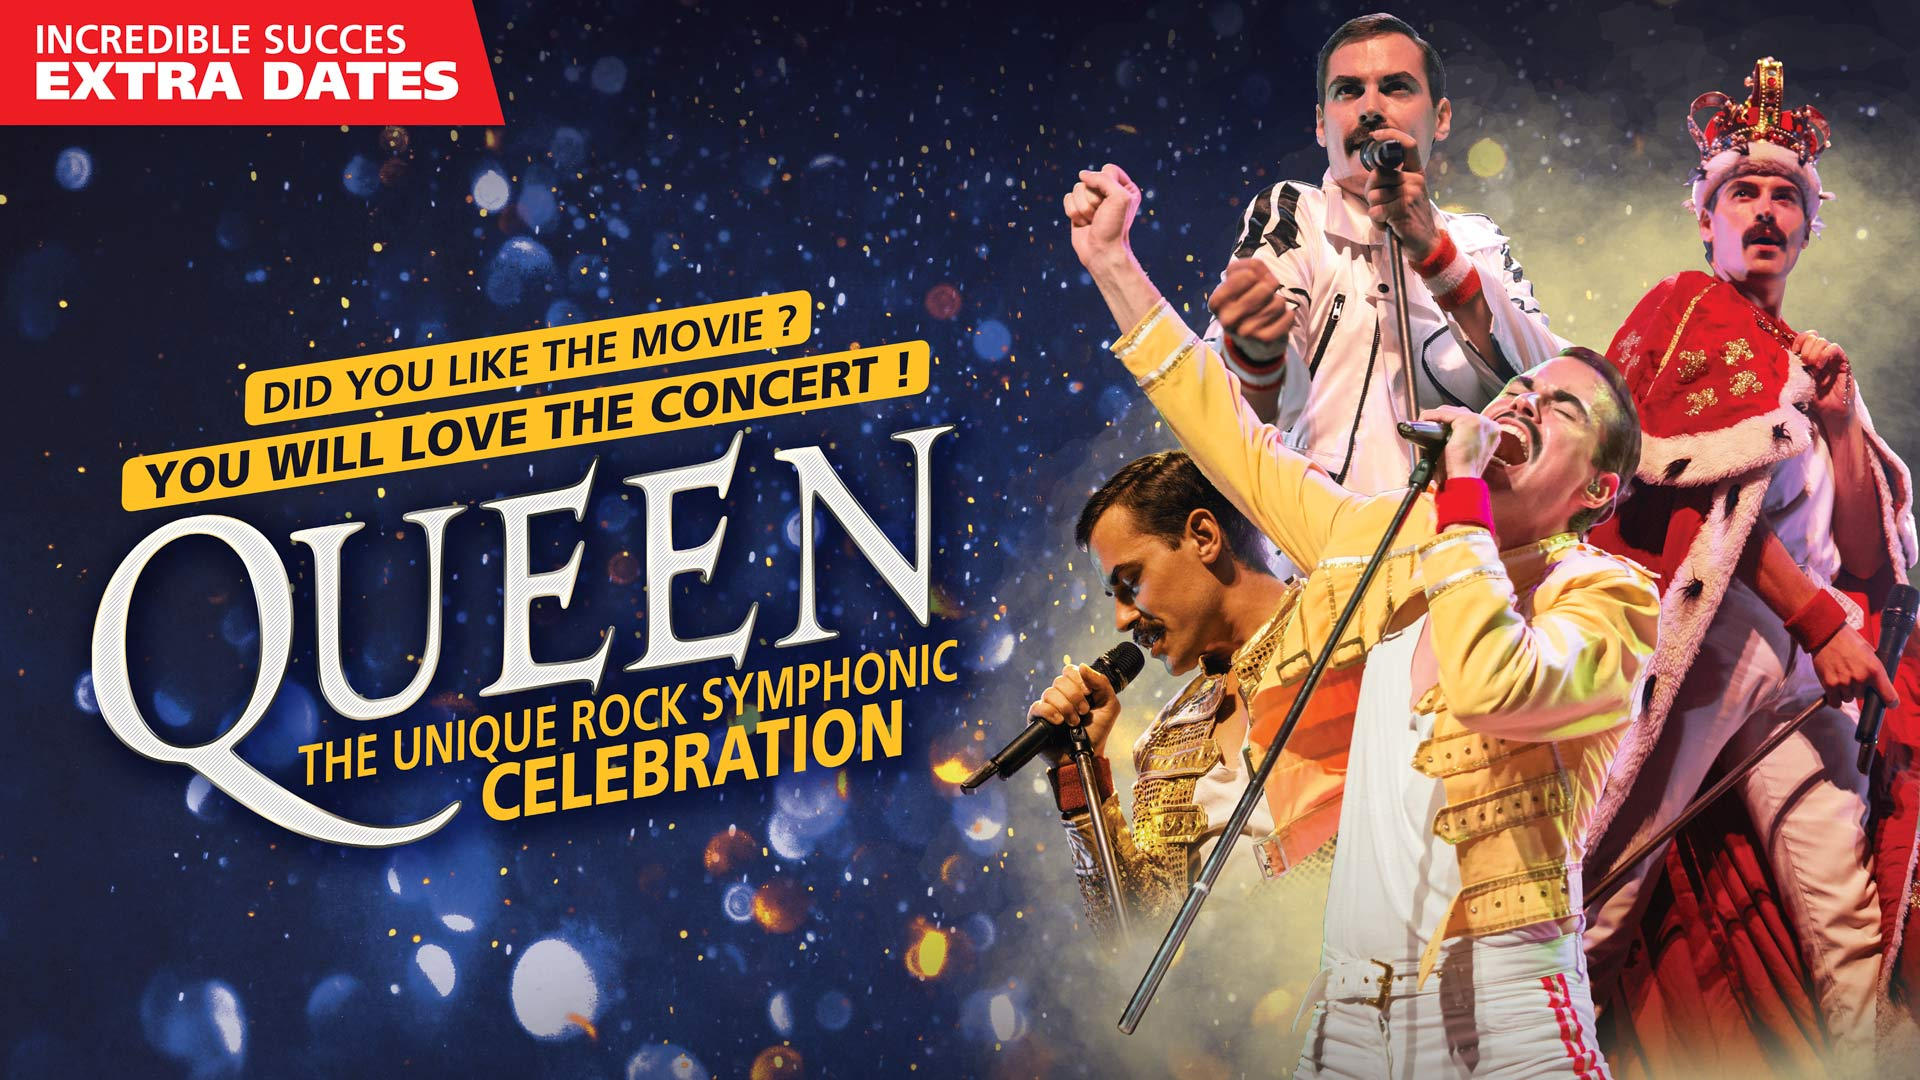 Queen, The Unique Rock-Symphonic Celebration